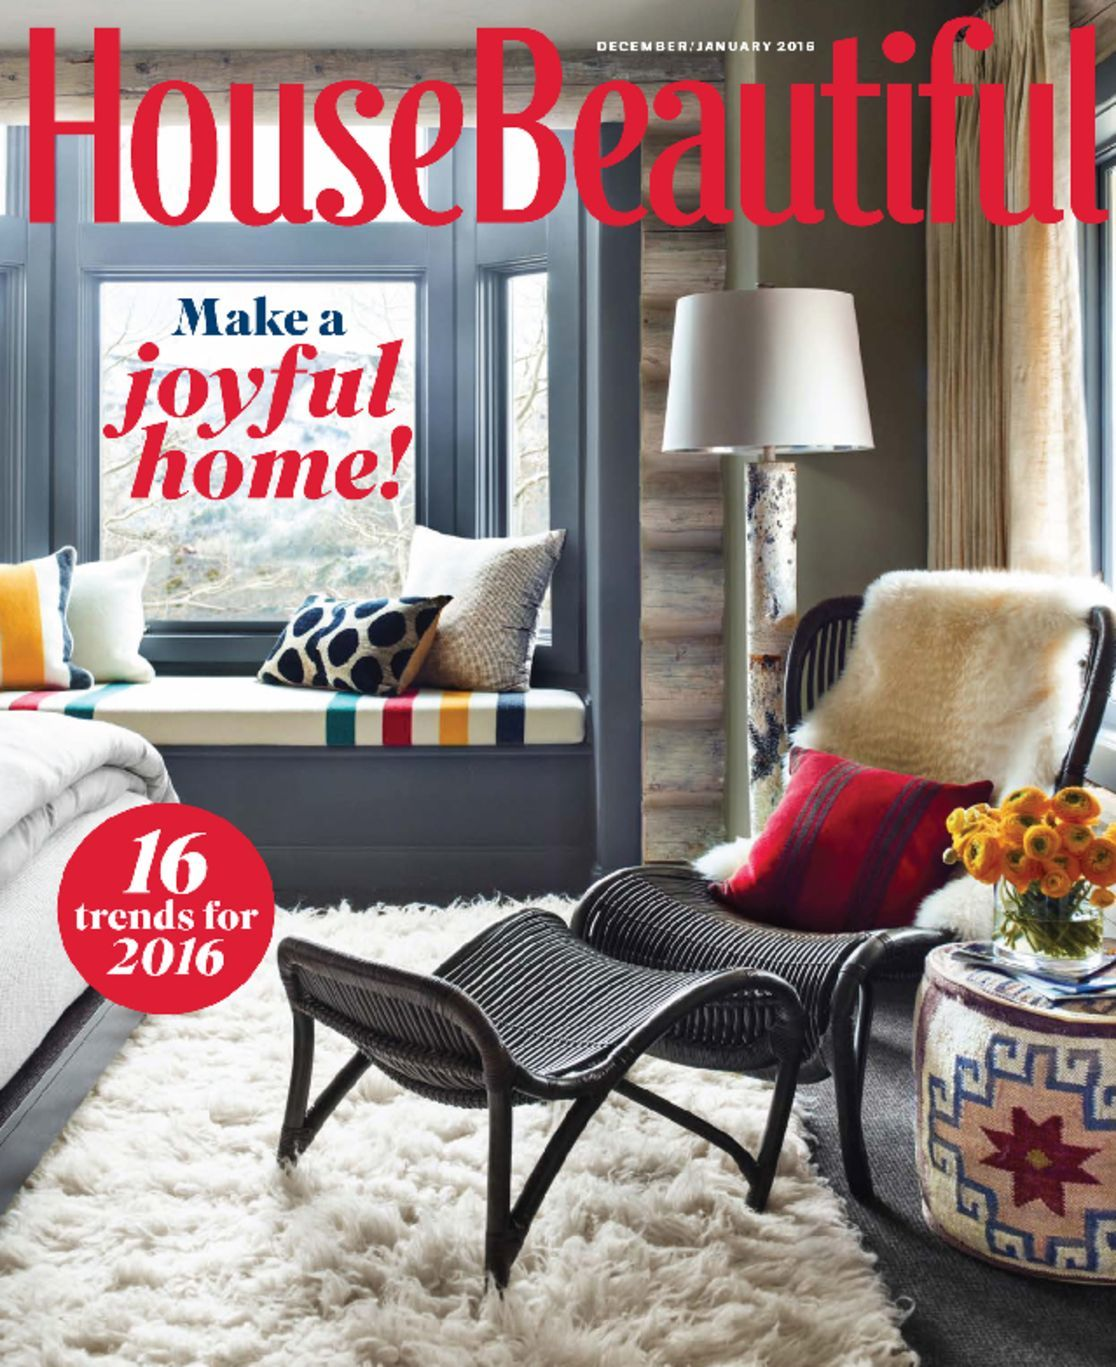 House Beautiful Kitchen: 5517-house-beautiful-Cover-2015-December-Issue.jpg